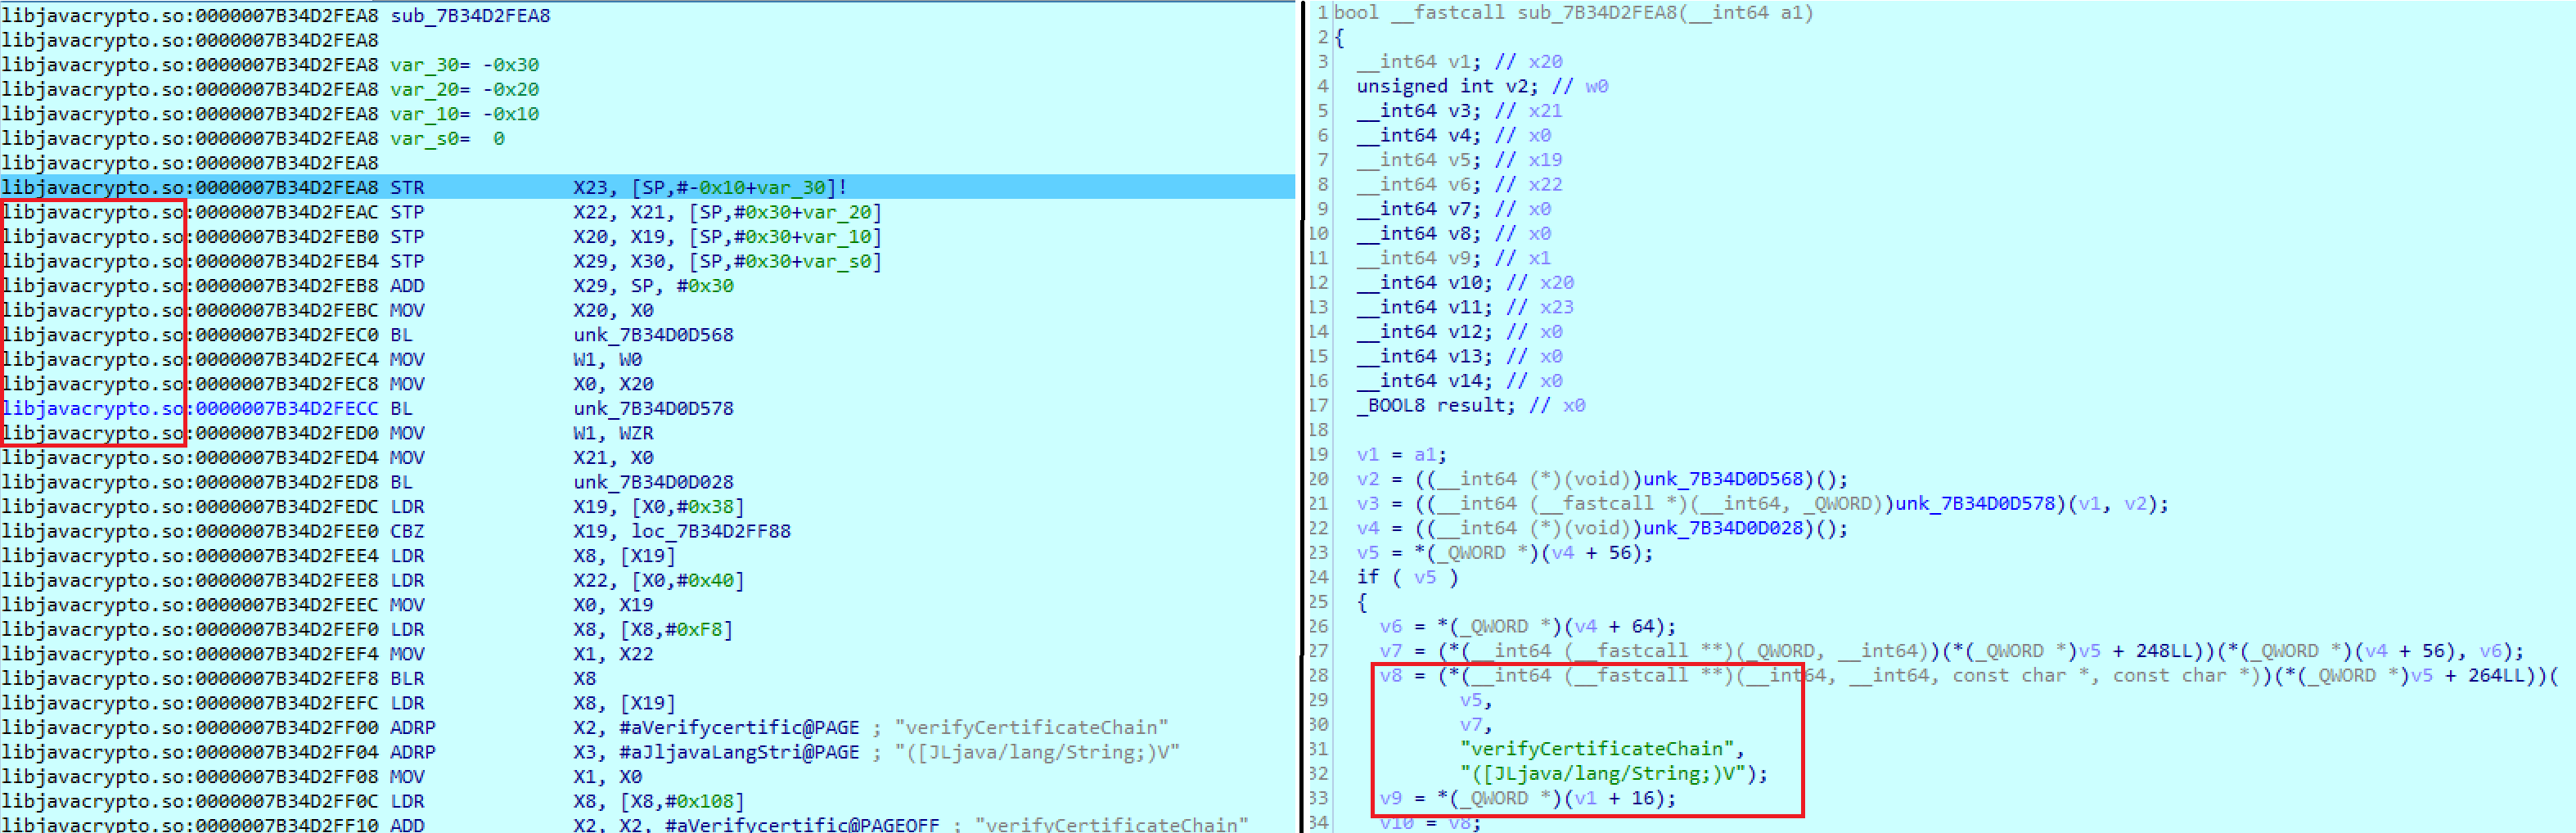 Callback function in Android that takes the control during the verification of the server's certificate